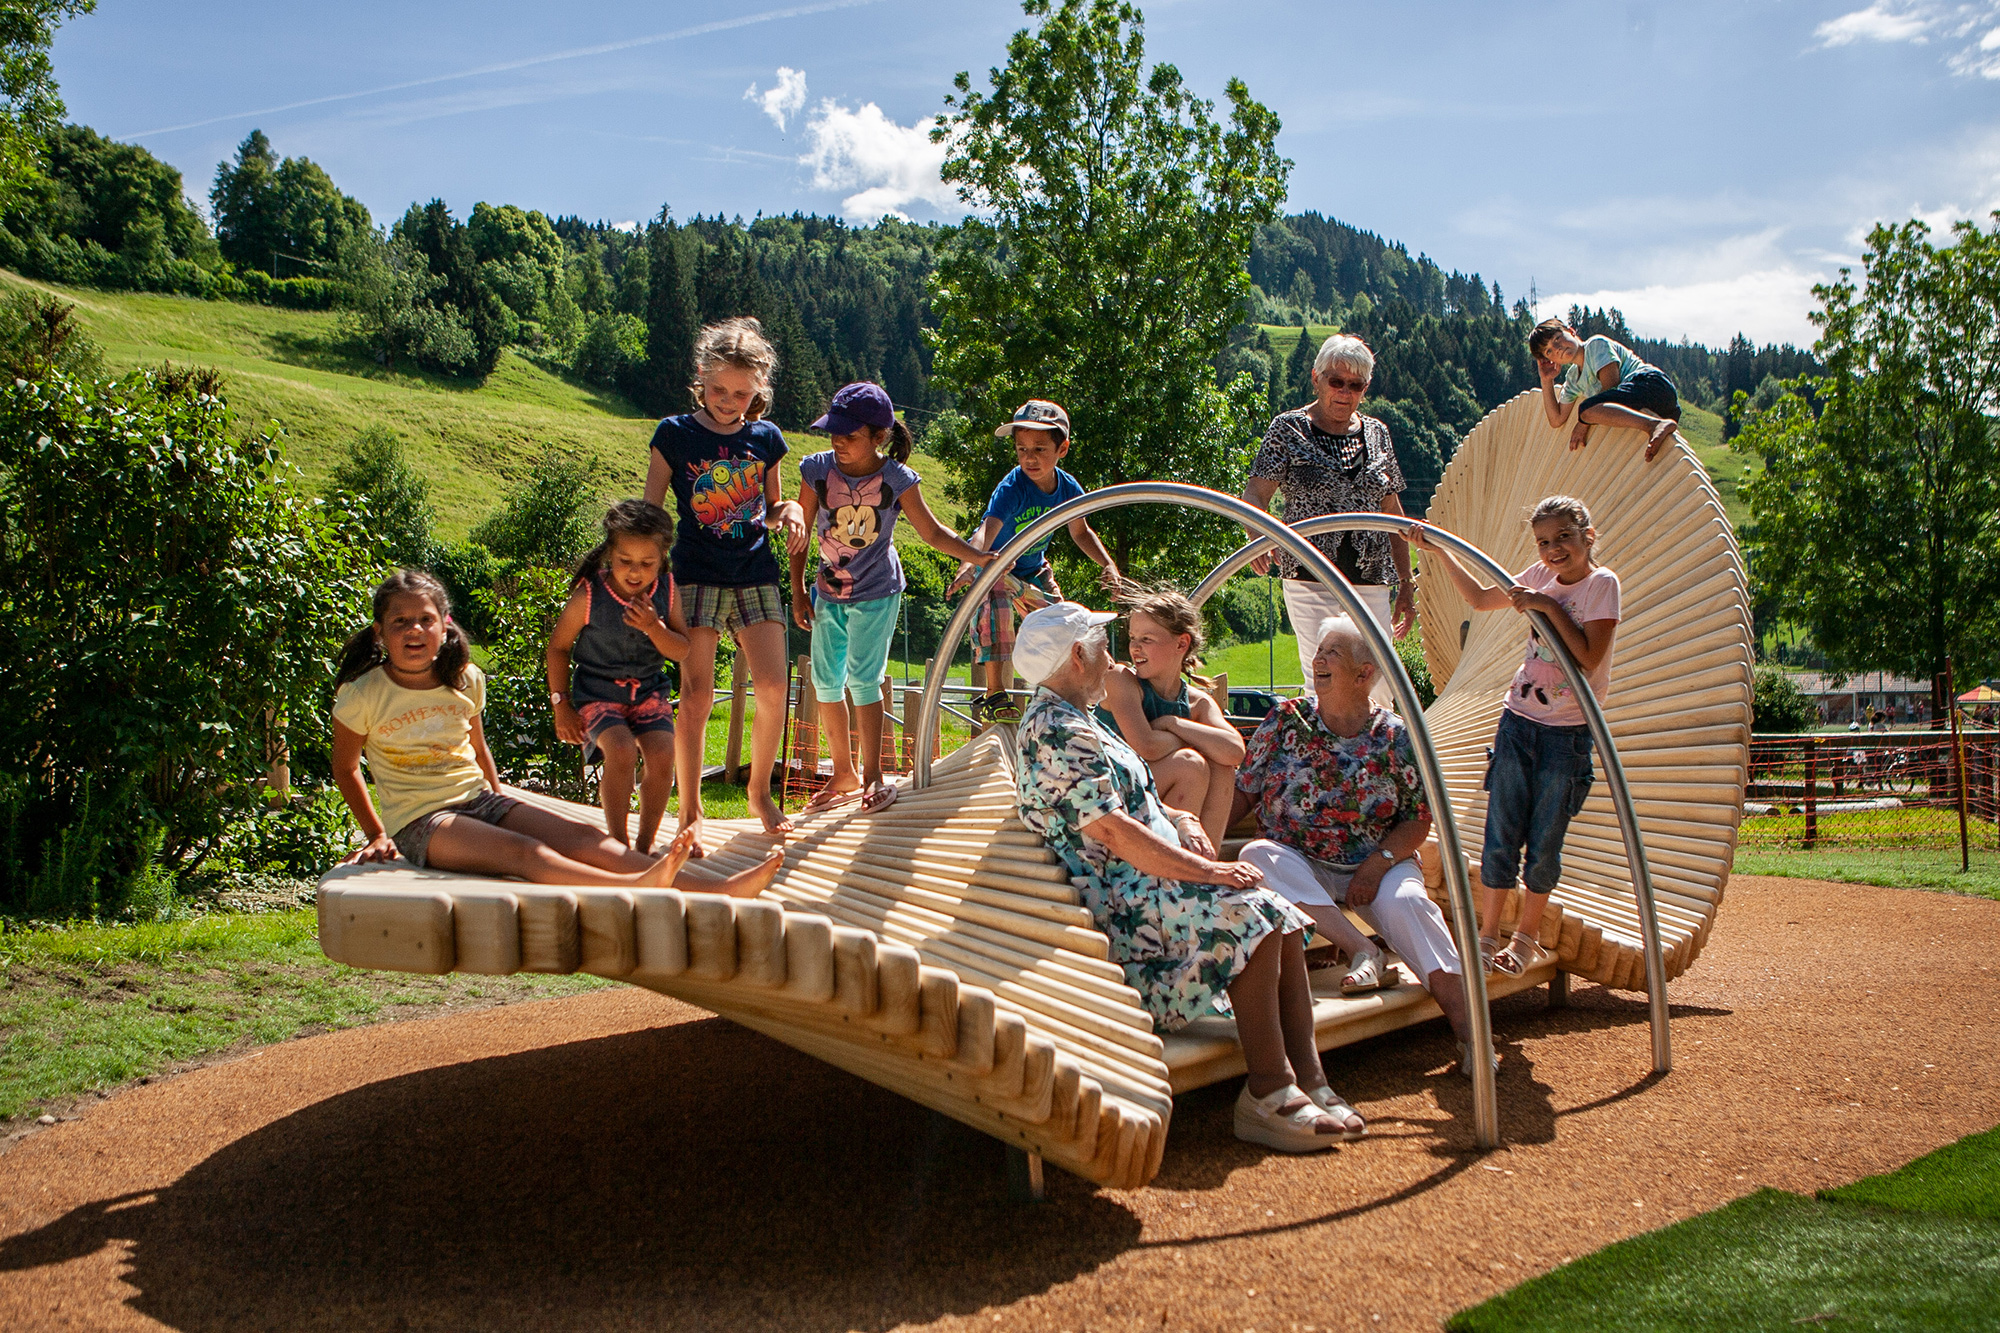 Multigenerational moveart playsculpture® launched to help tackle challenges of modern family life in public space